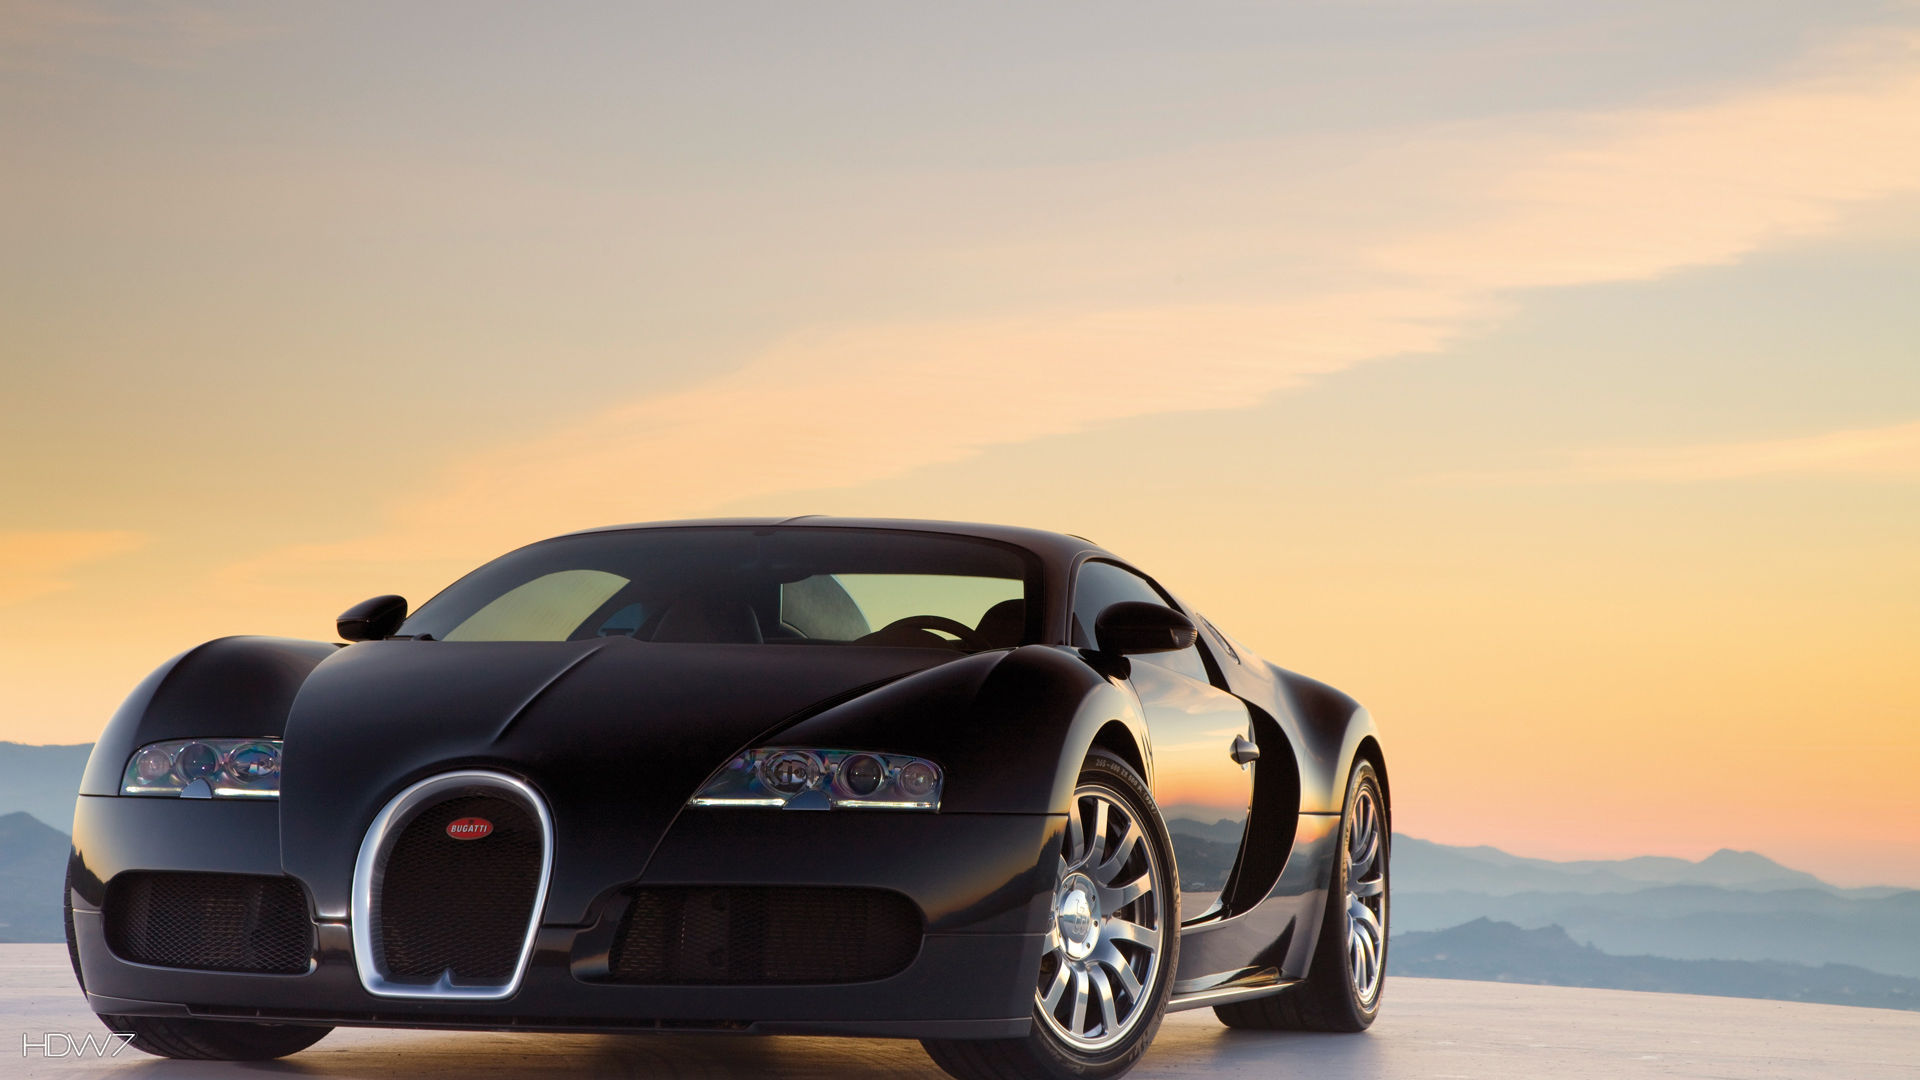 bugatti veyron black 2008 car hd wallpaper hd wallpaper gallery 130. Cars Review. Best American Auto & Cars Review